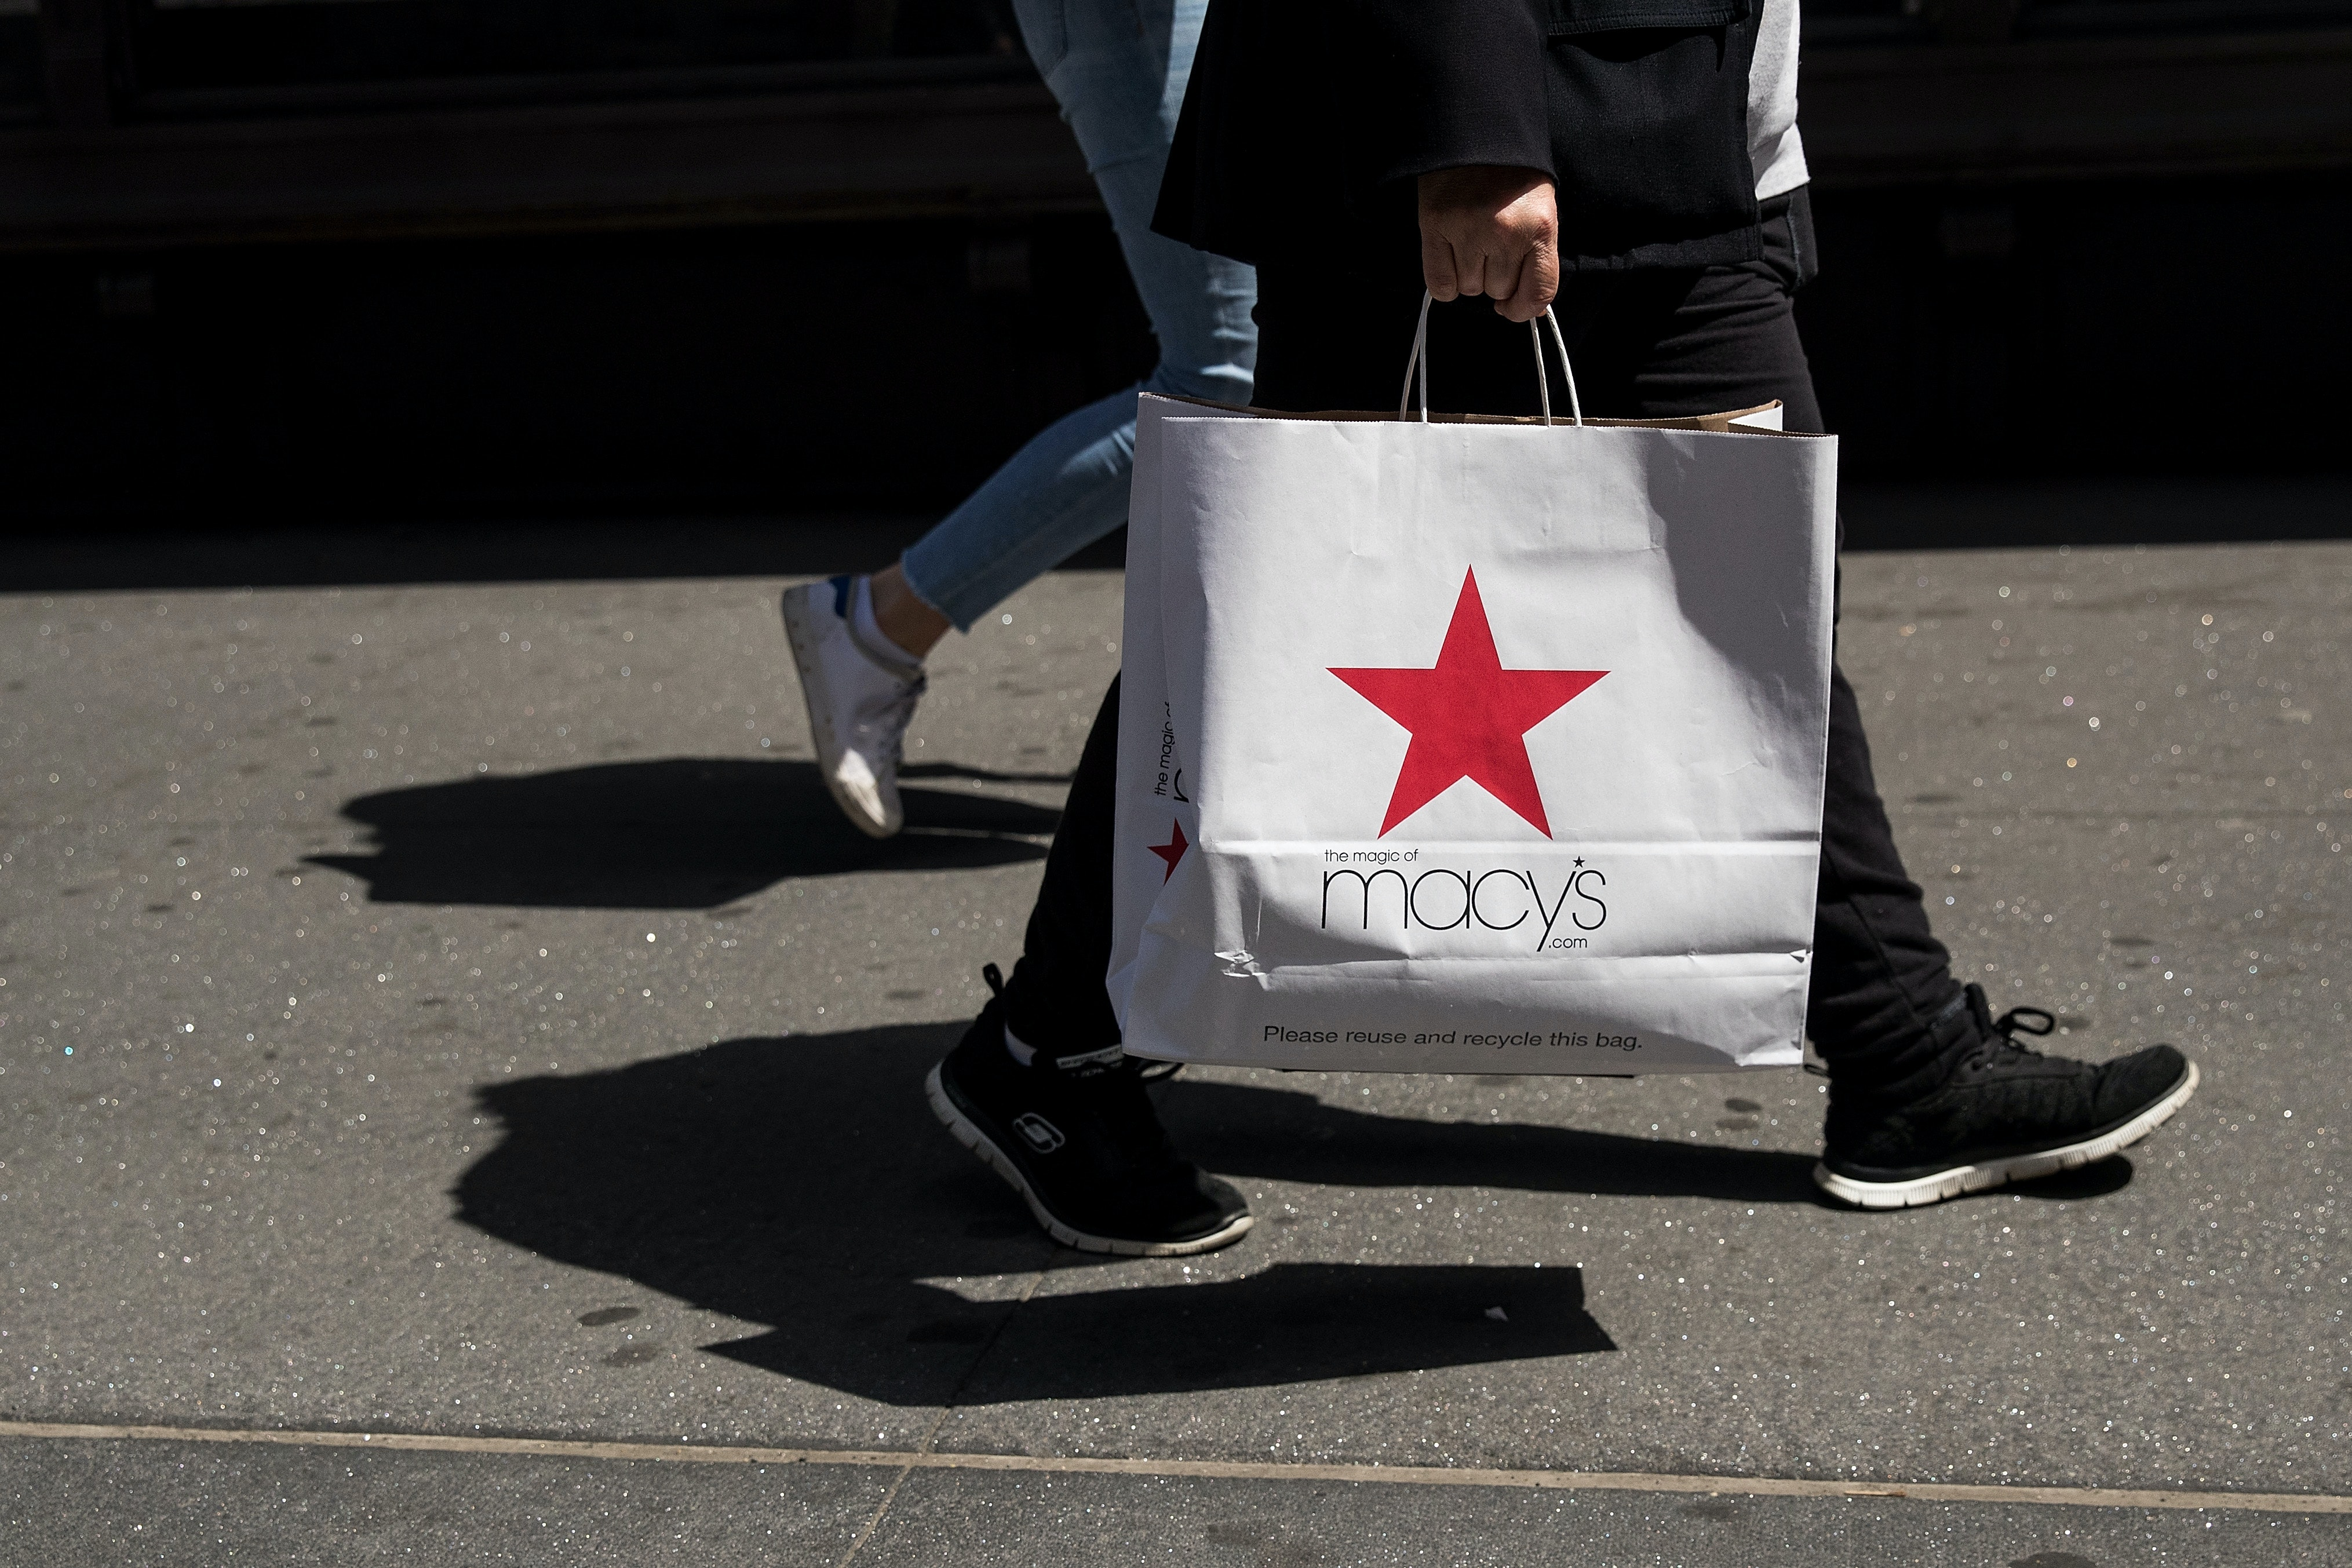 Macy's Cyber Monday 2018 Sales Include